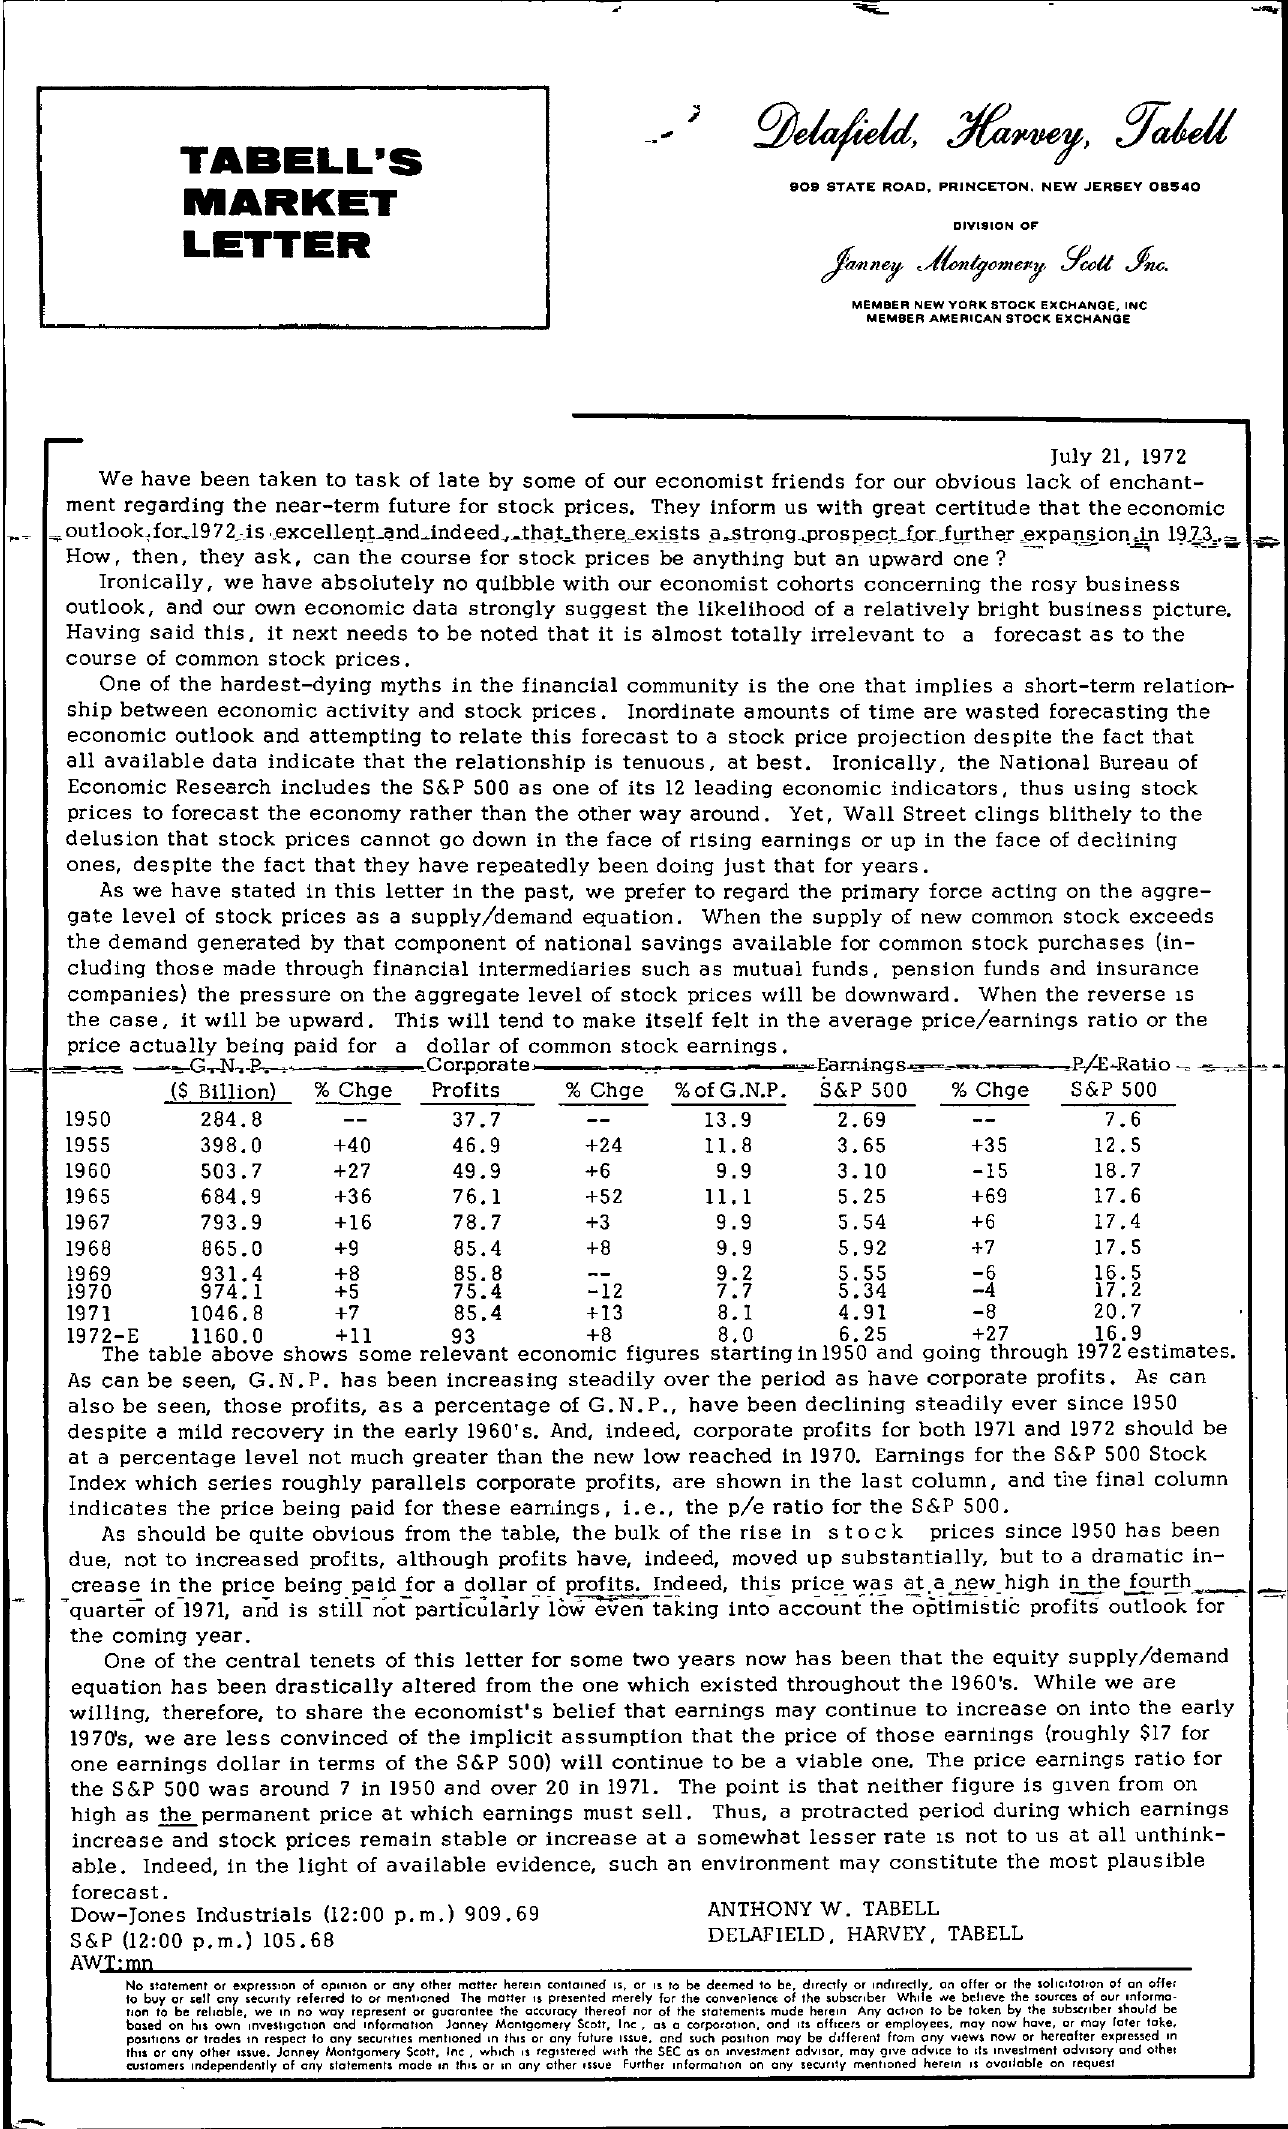 Tabell's Market Letter - July 21, 1972